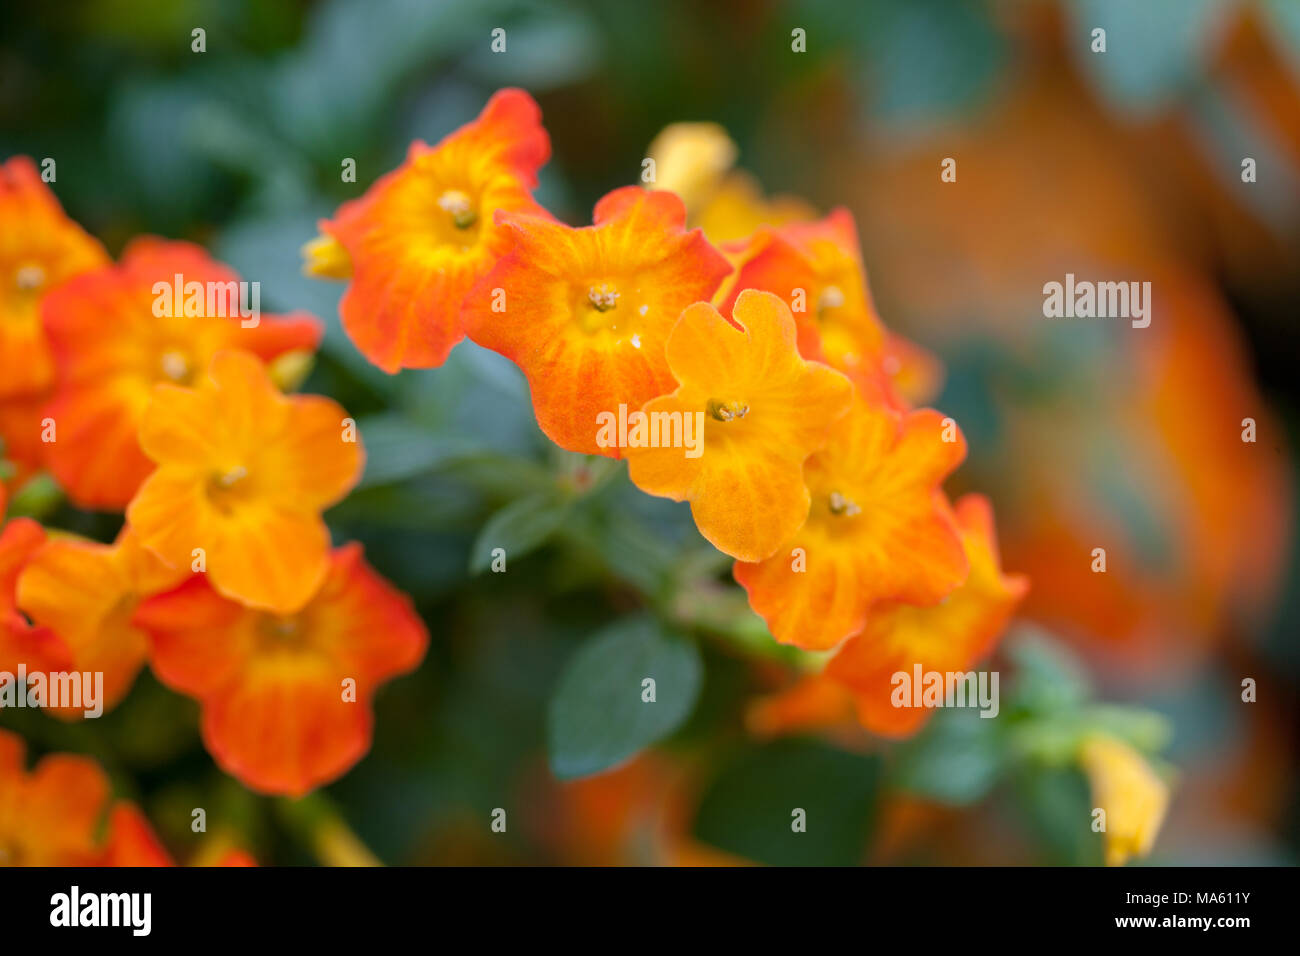 Marmalade Bush, Gulltratt (Streptosolen jamesonii) - Stock Image